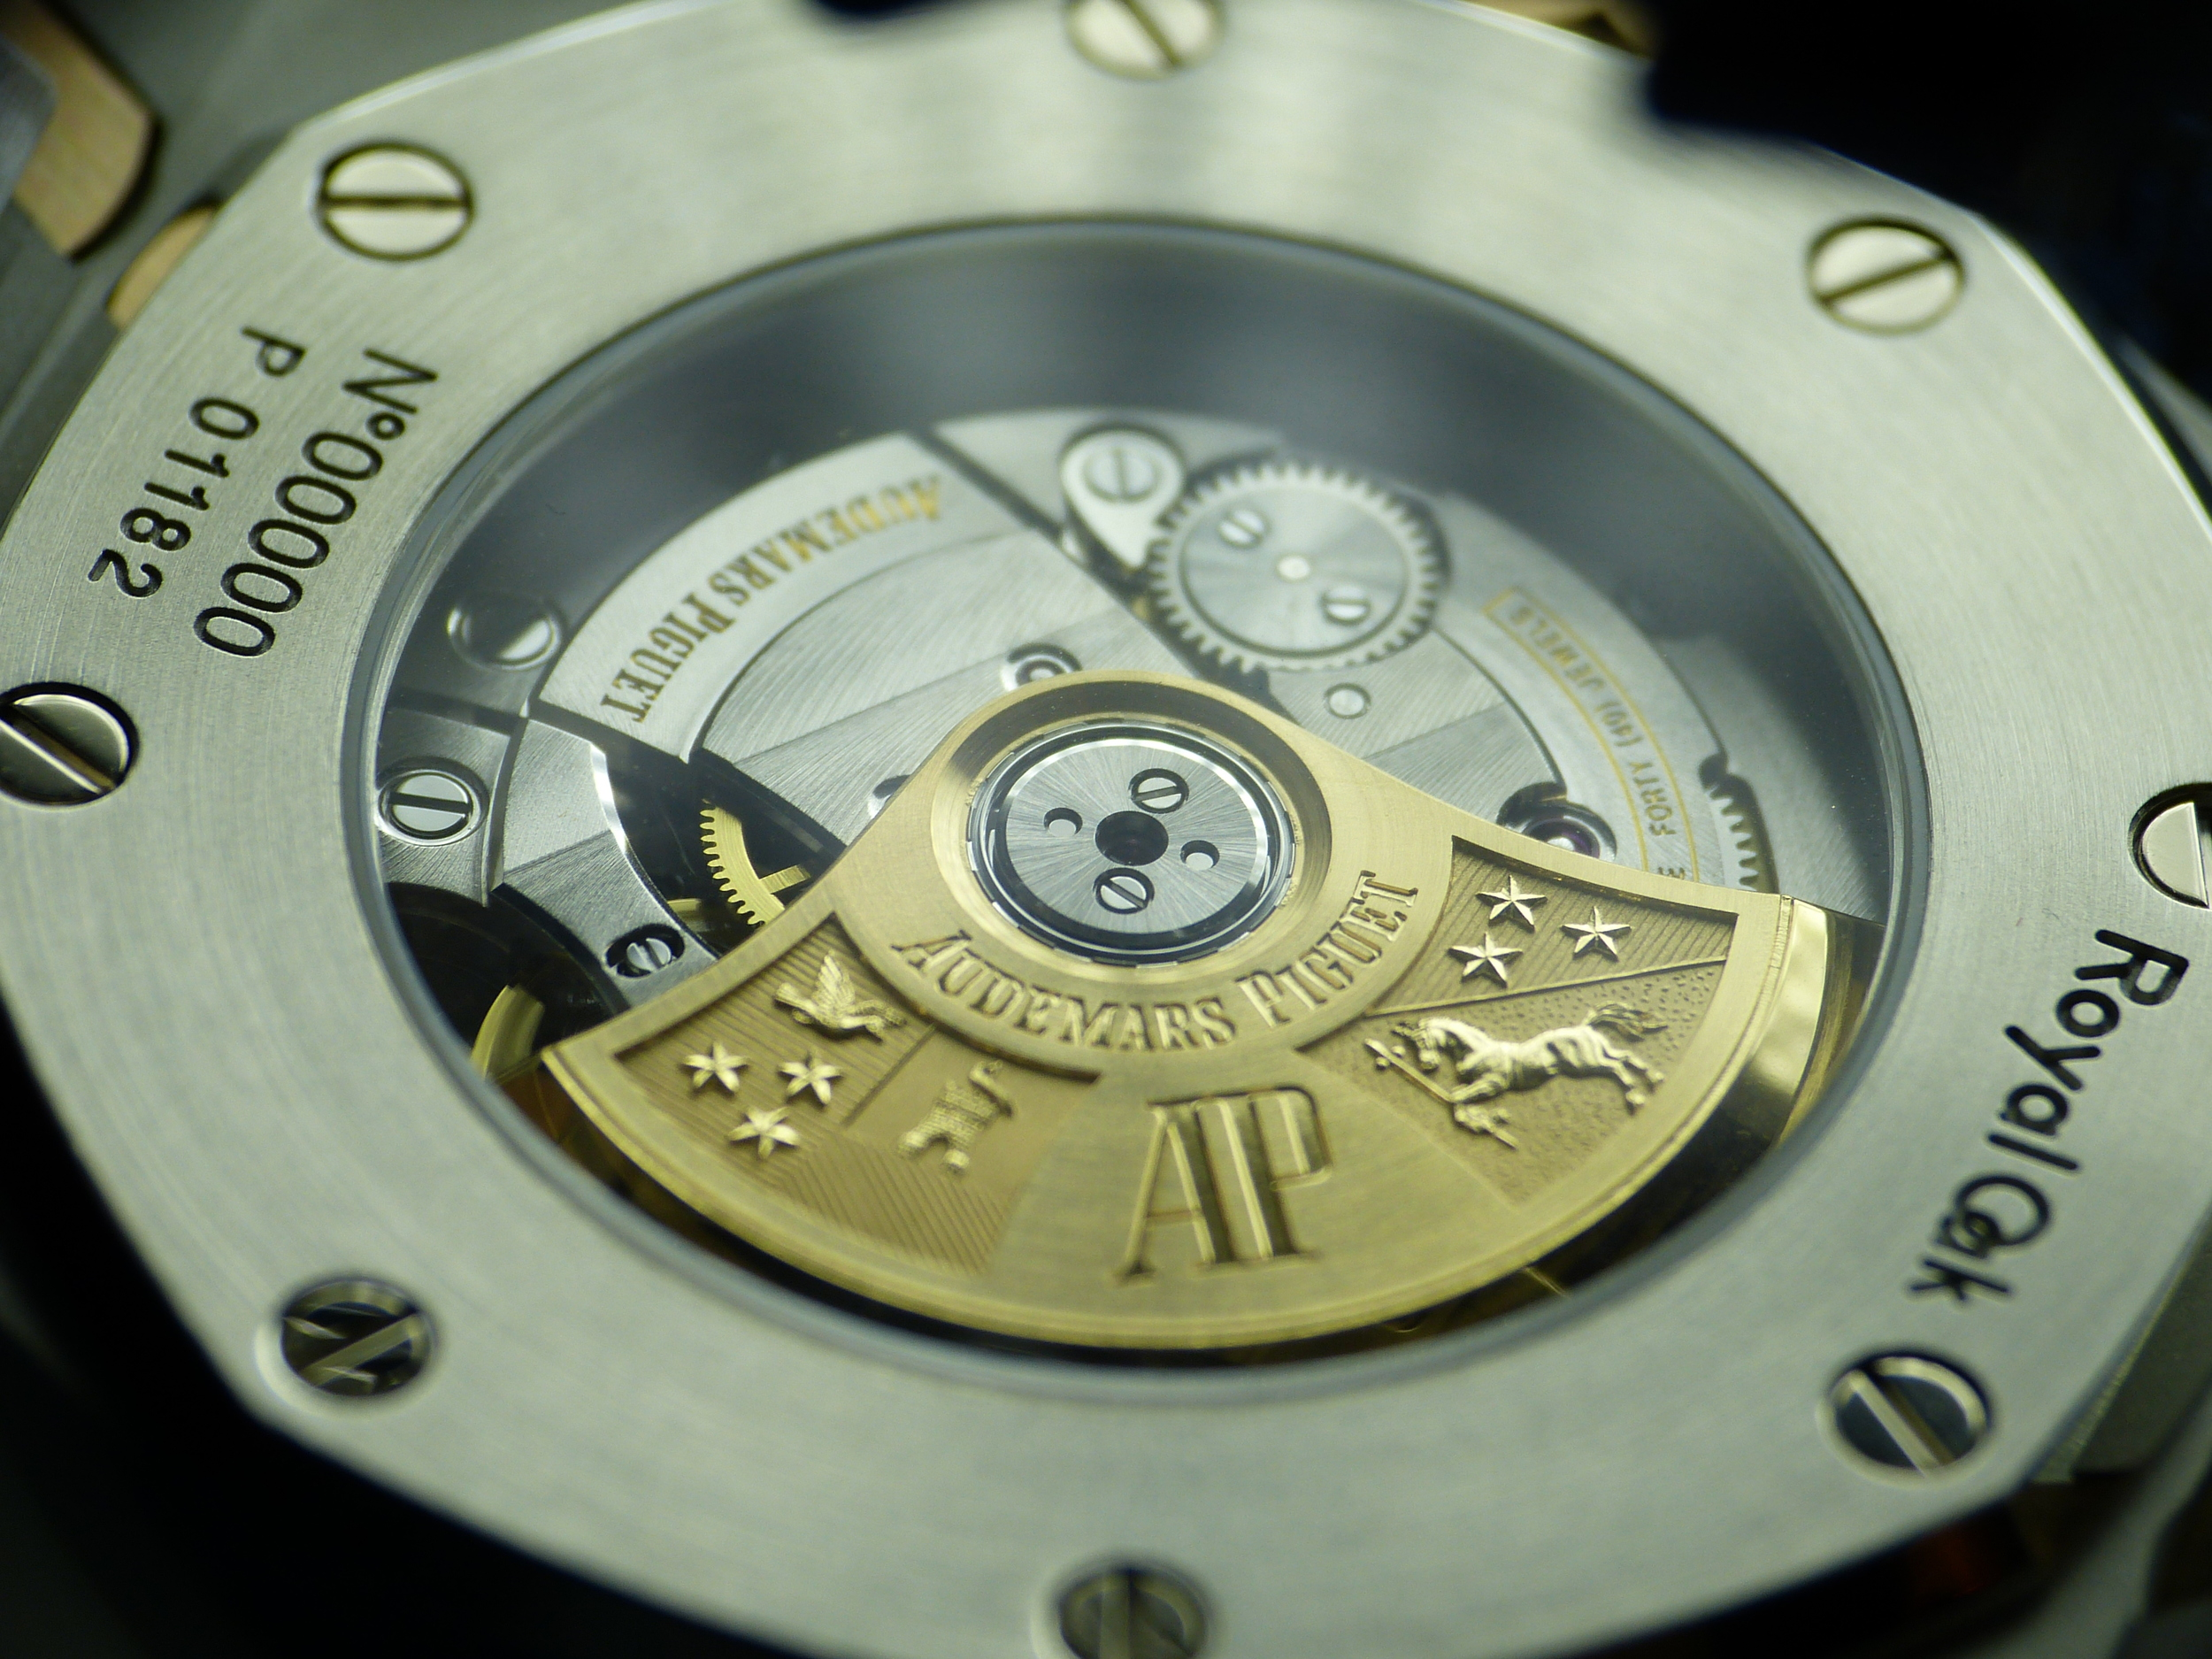 Audemars Piguet In-House Automatic Calibre 3120